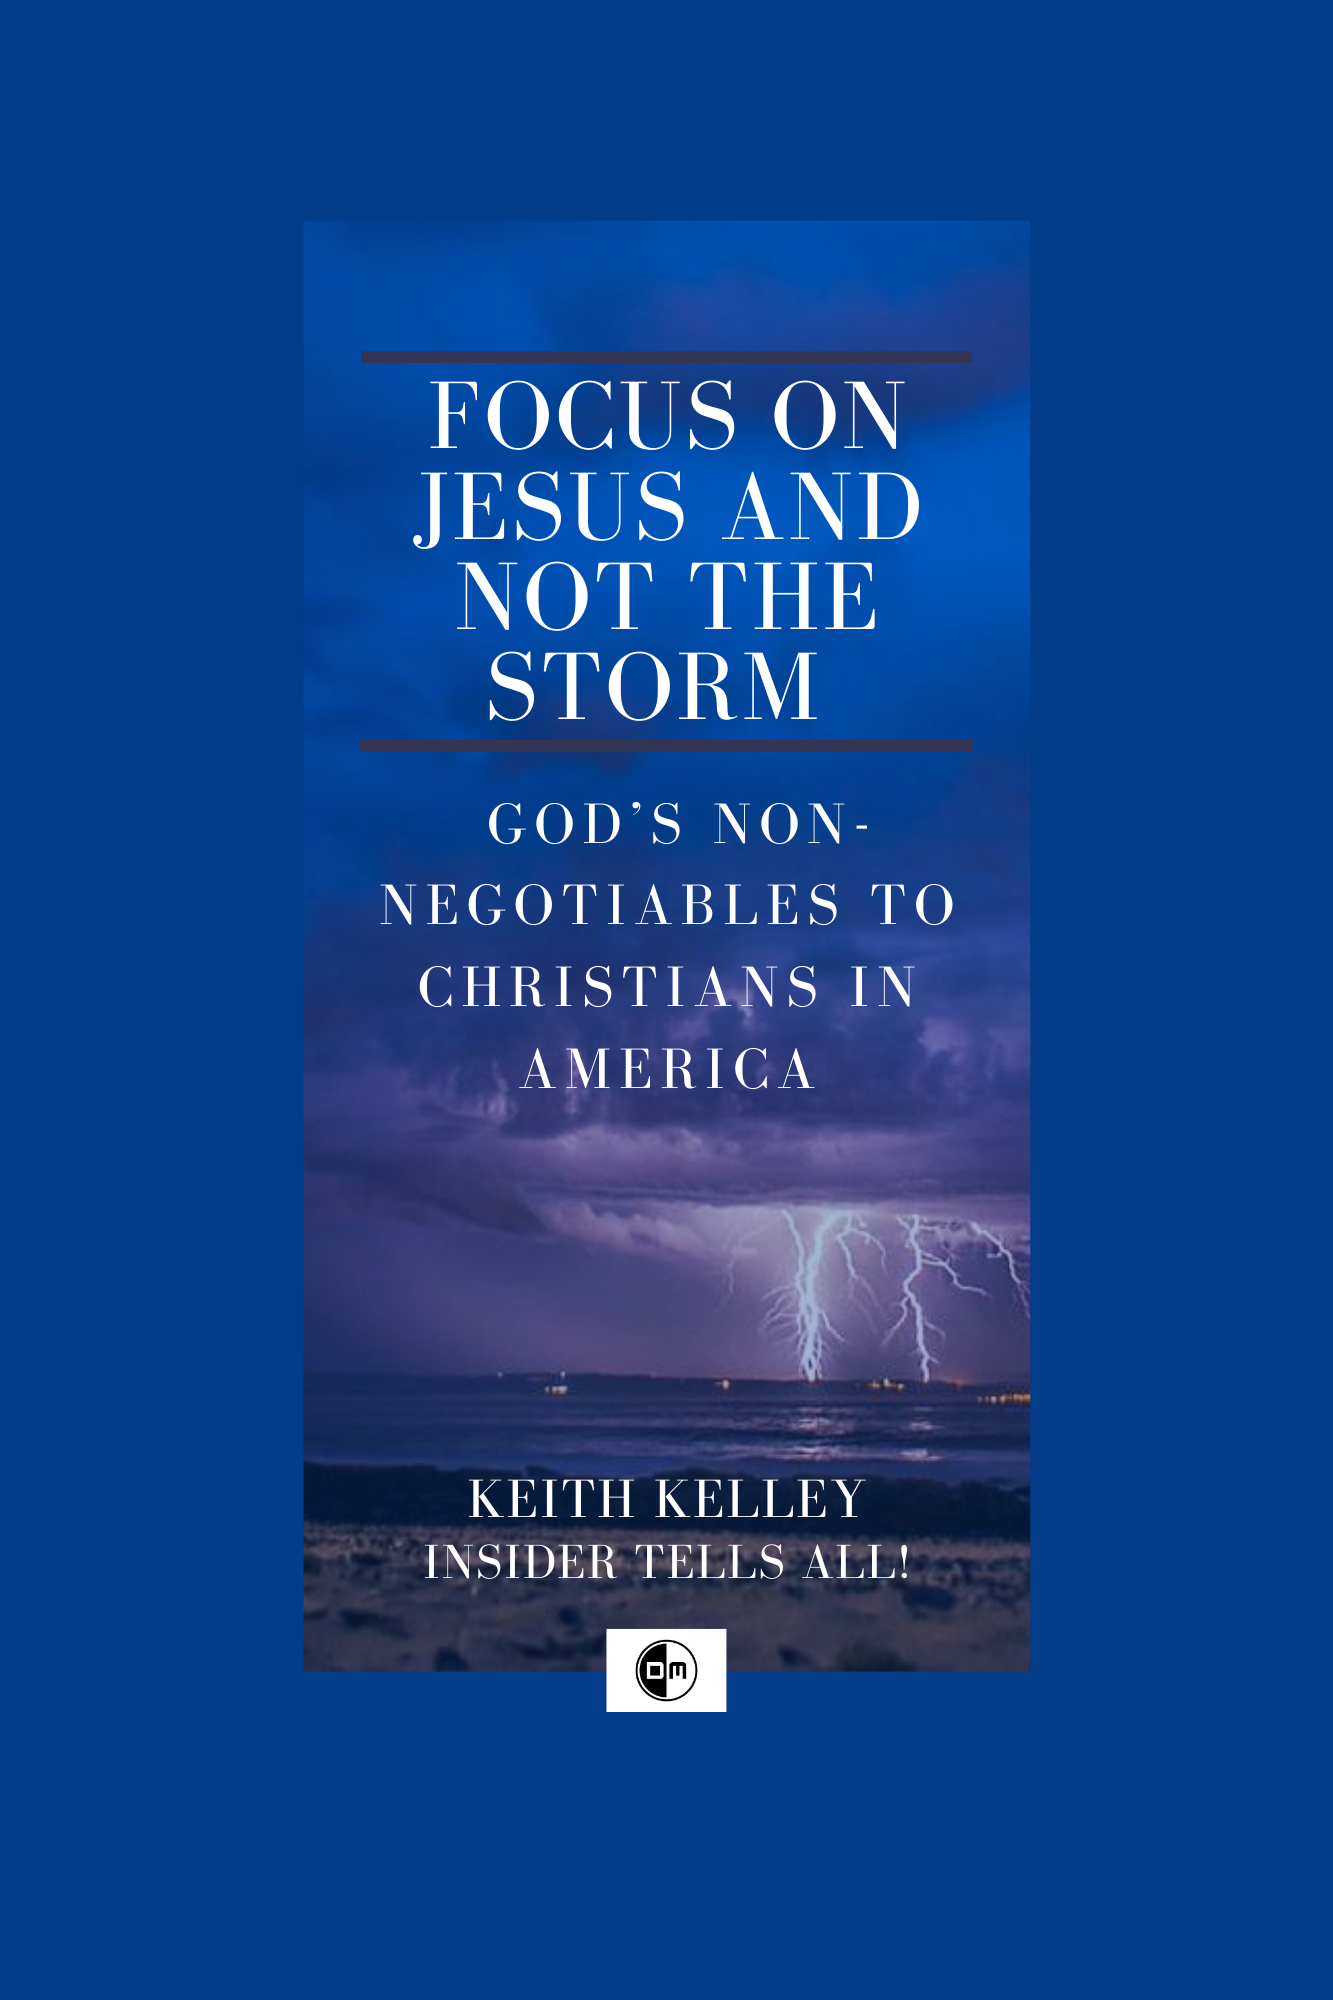 Focus on Jesus and Not the Storm God's Non-Negotiables to Christians in America - Insider Tells ALL!